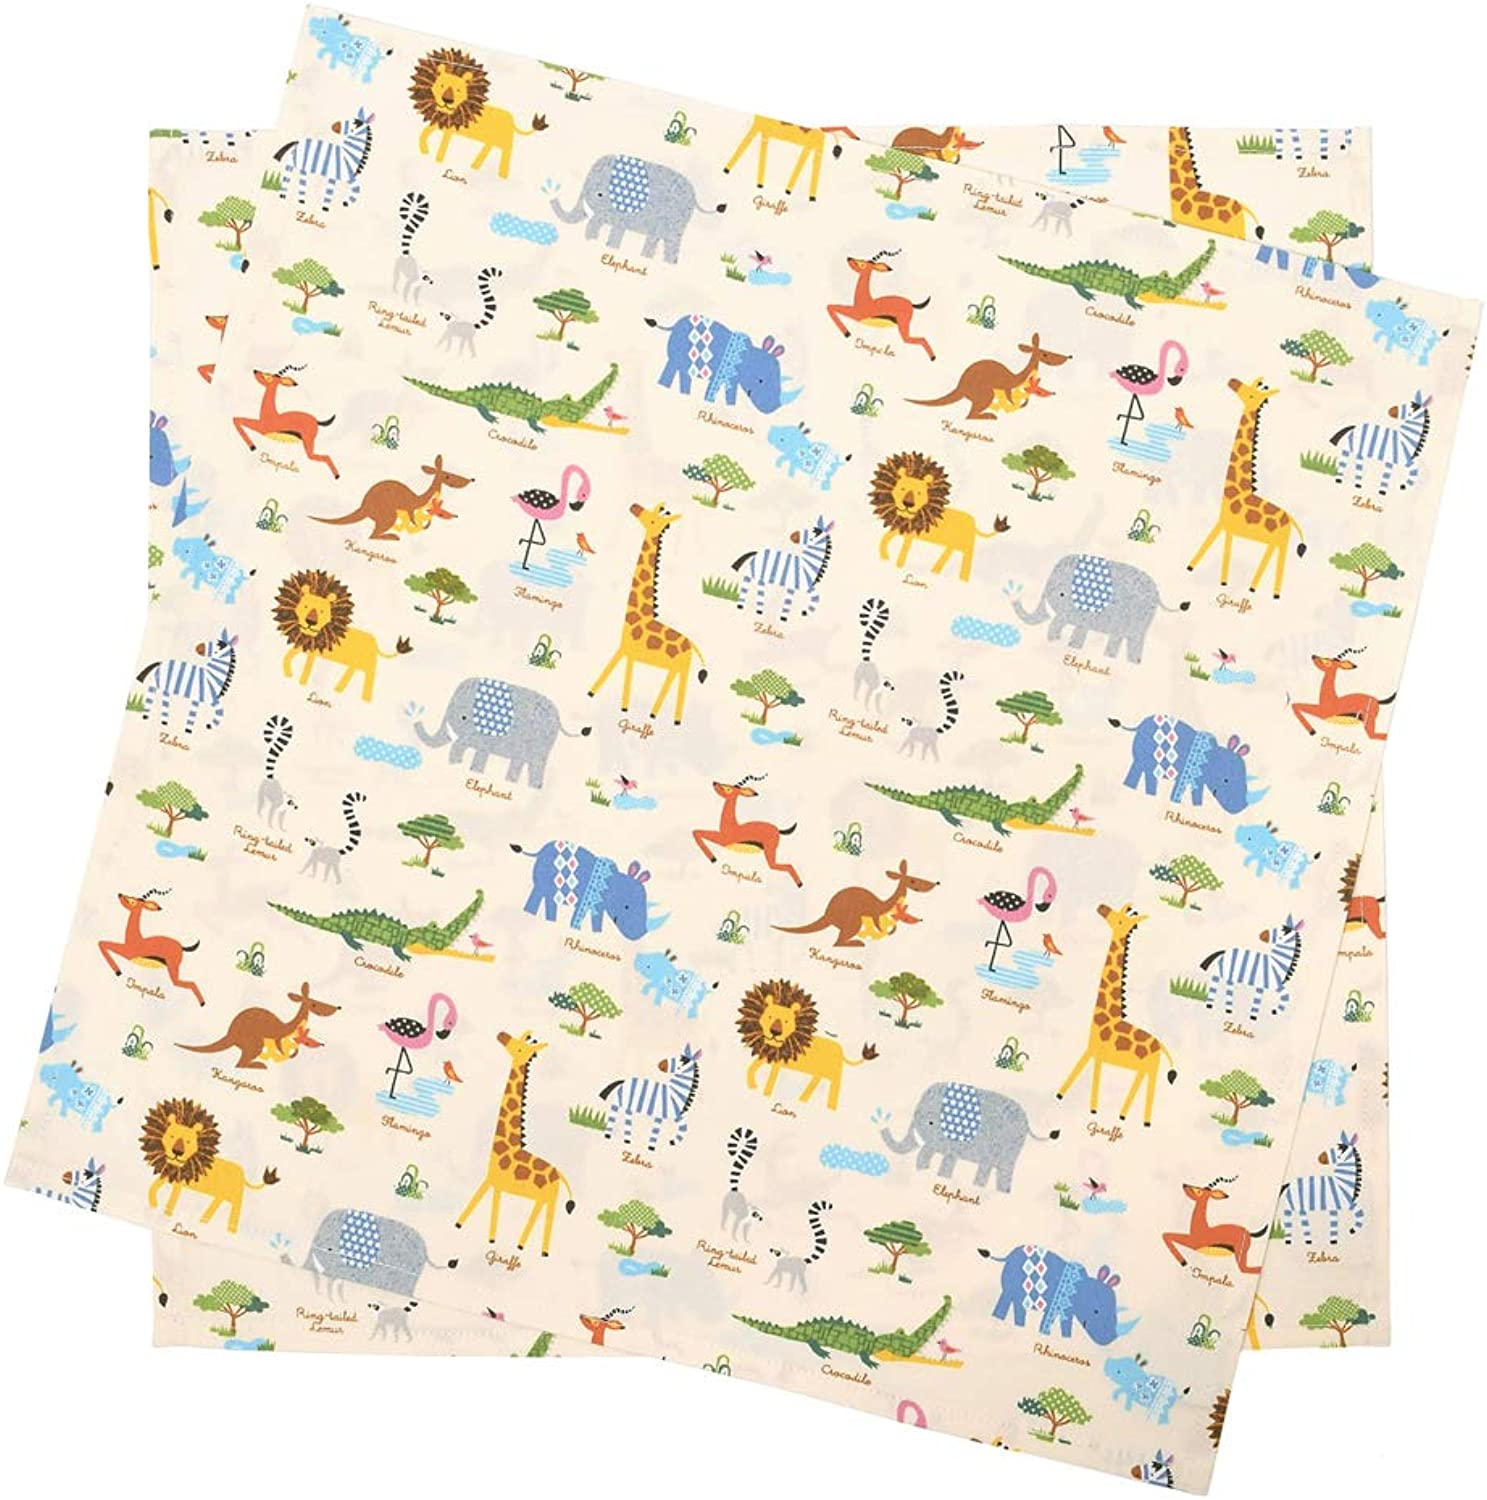 Set of 2 Standard type savanna animal animal animal crossing